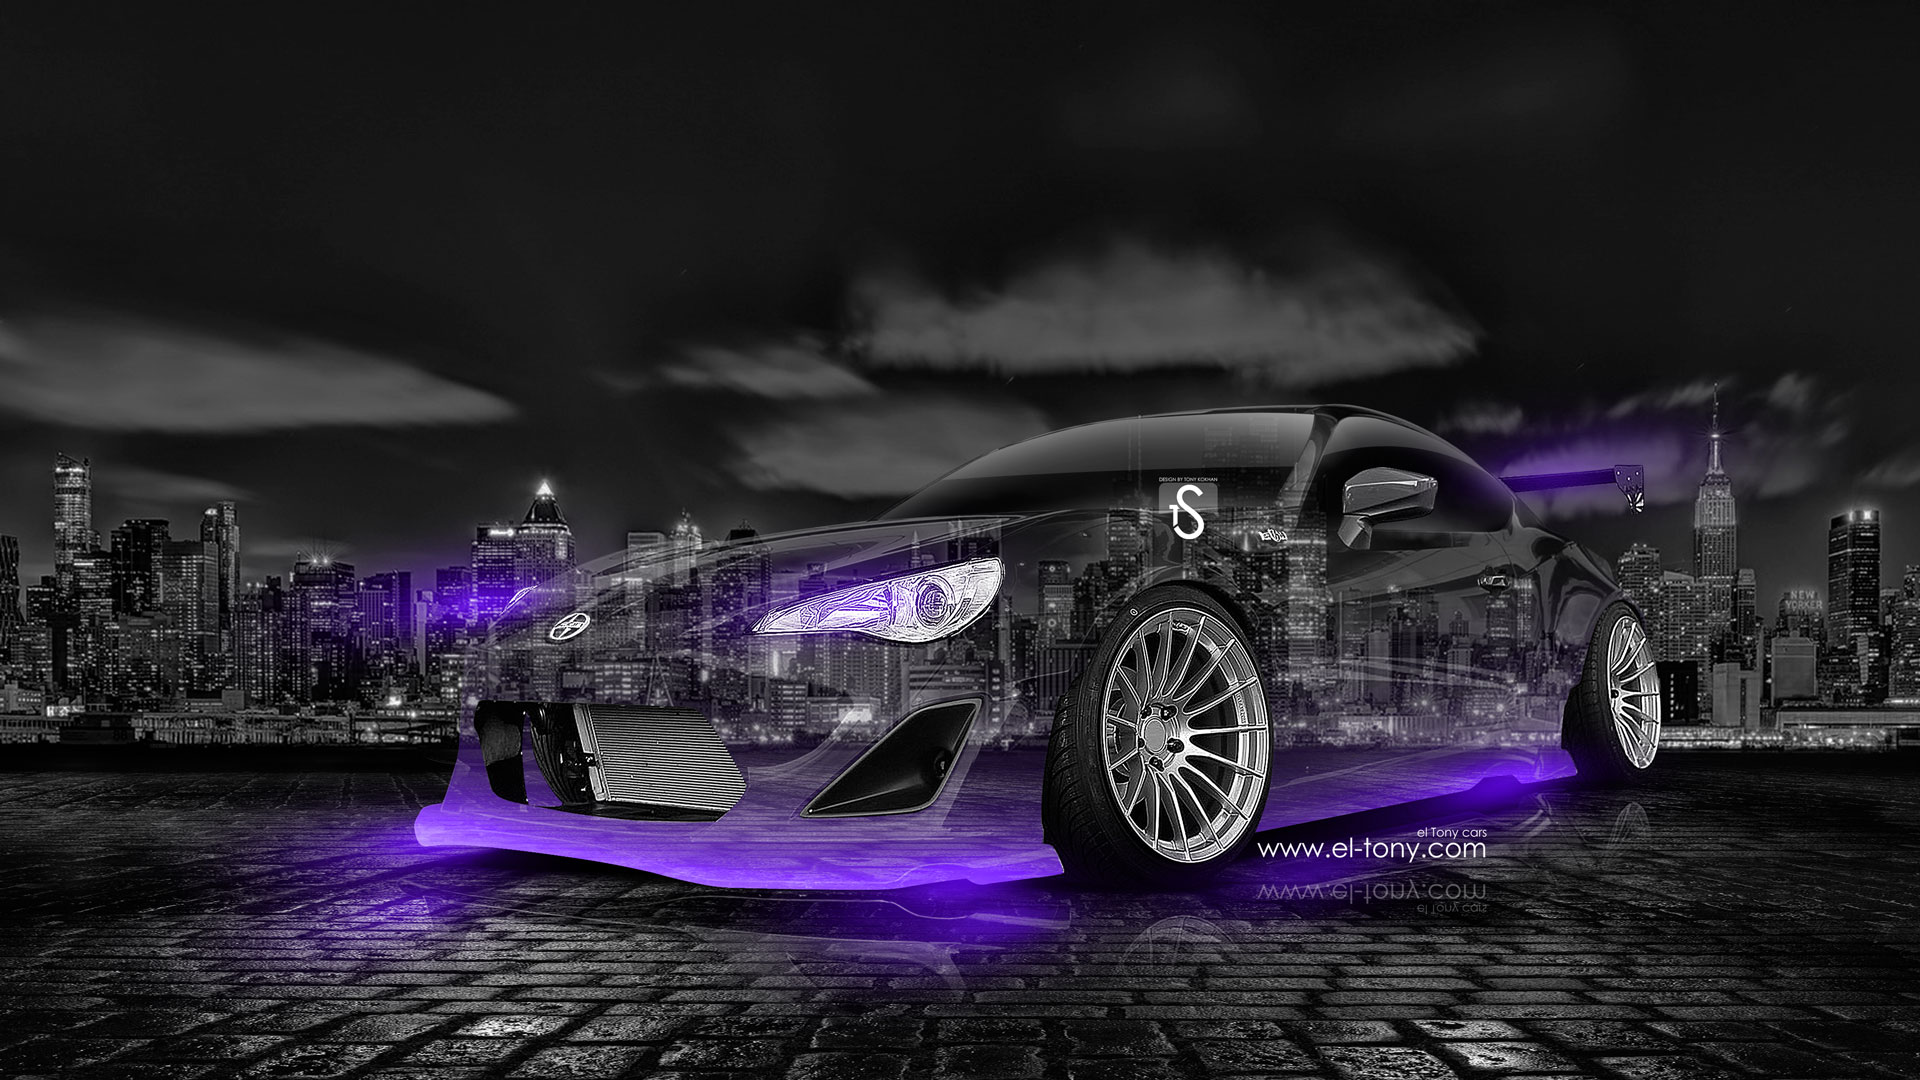 Scion-FR-S-Crystal-City-Car-2014-Violet-Neon-design-by-Tony-Kokhan-[www.el-tony.com]